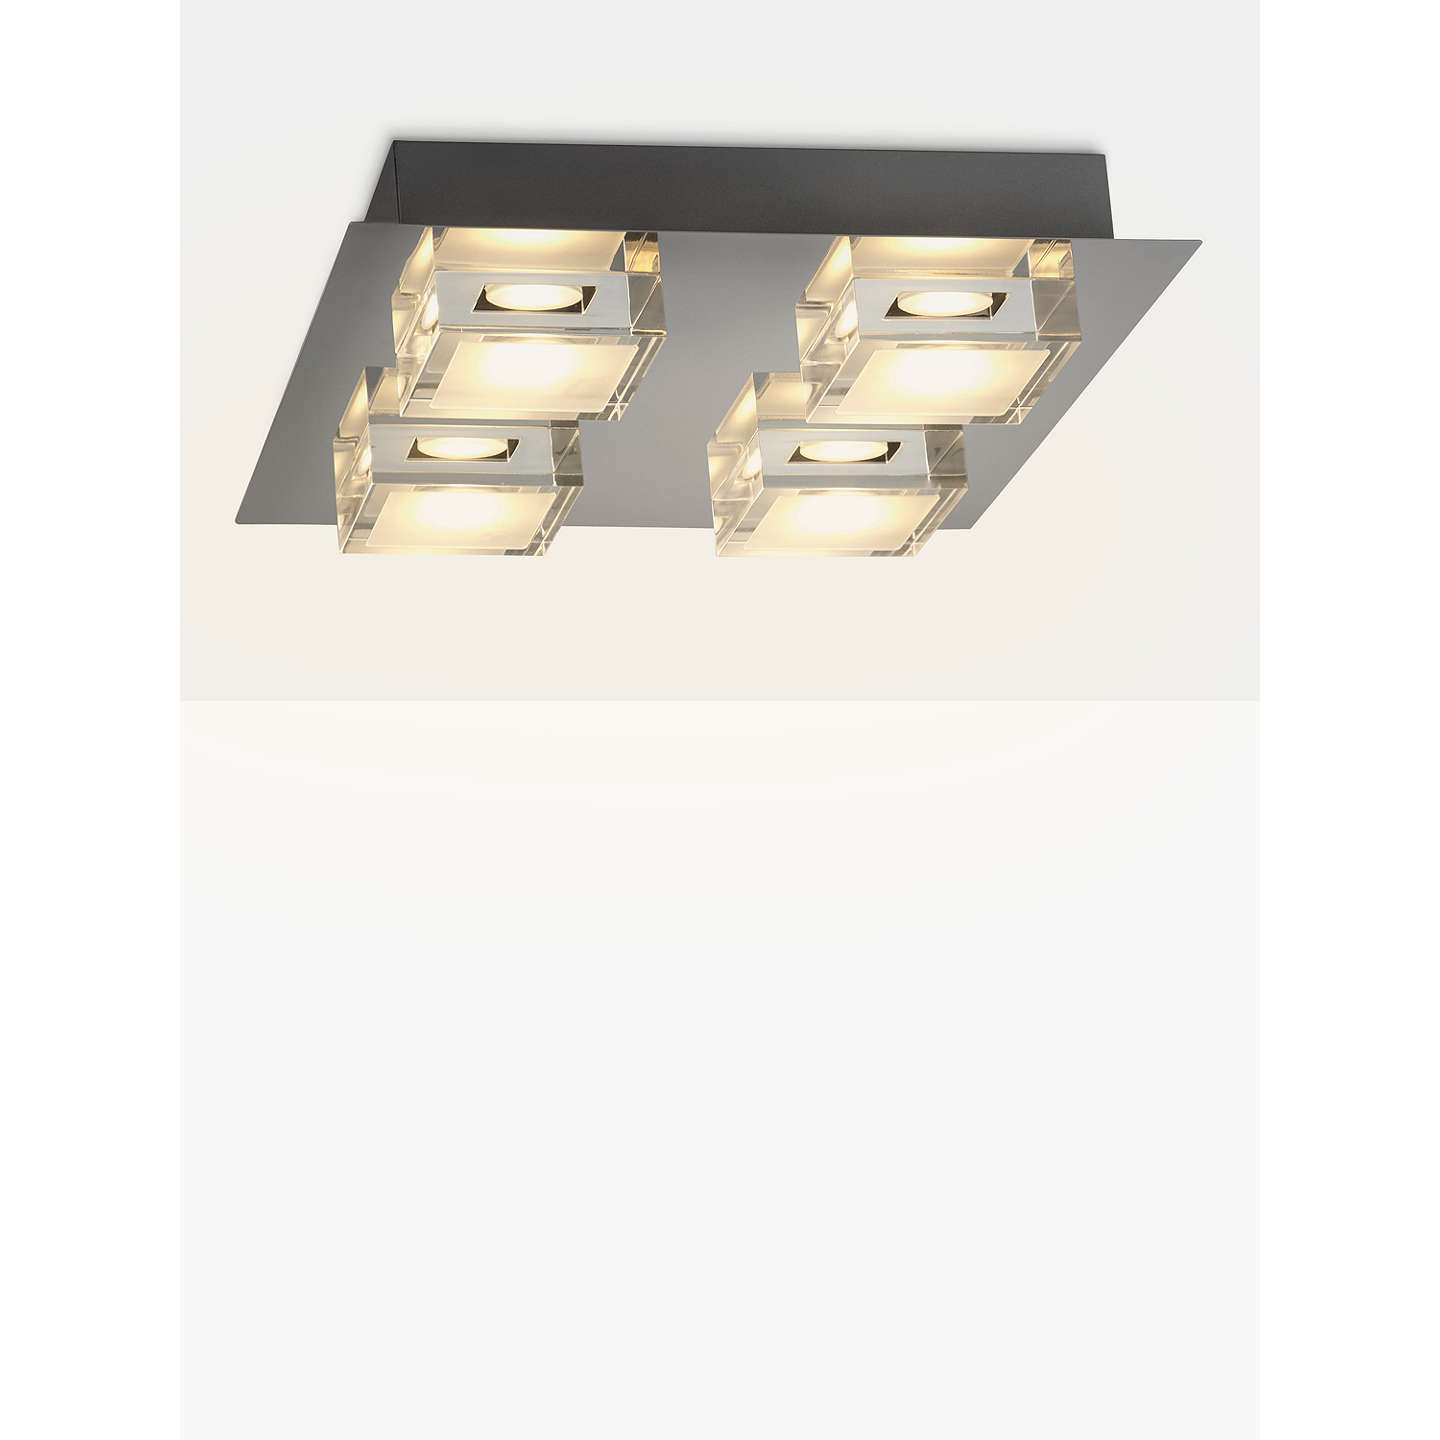 led bathroom vanity lighting lewis arlo led bathroom ceiling light chrome at 19173